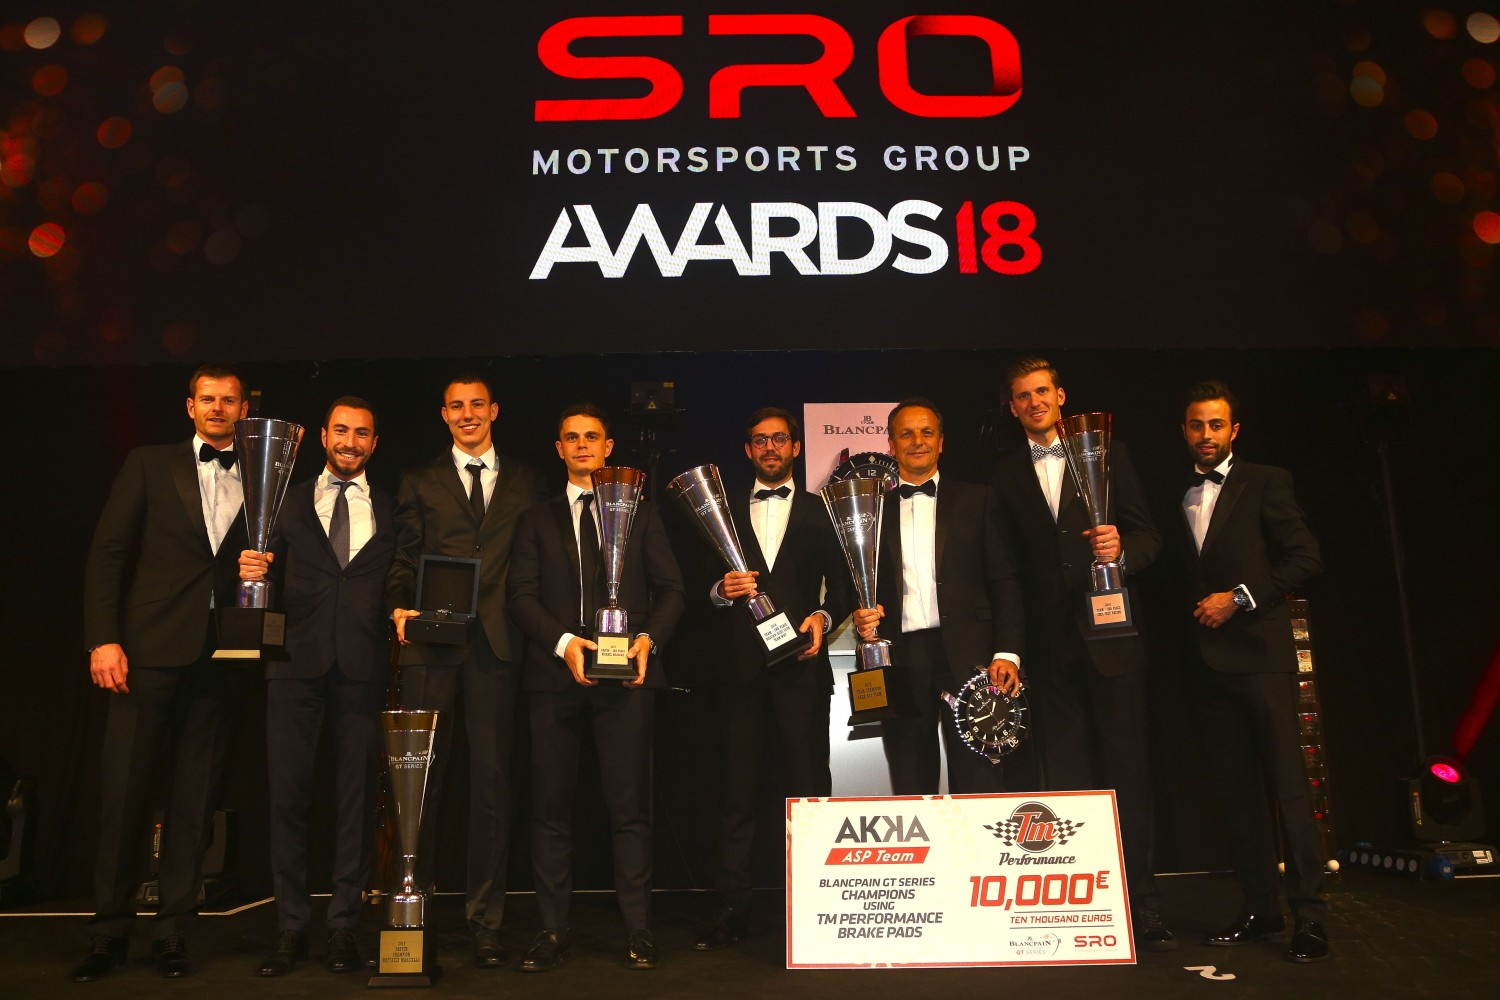 Champions of 2018 crowned in London at spectacular SRO Motorsports Group awards ceremony